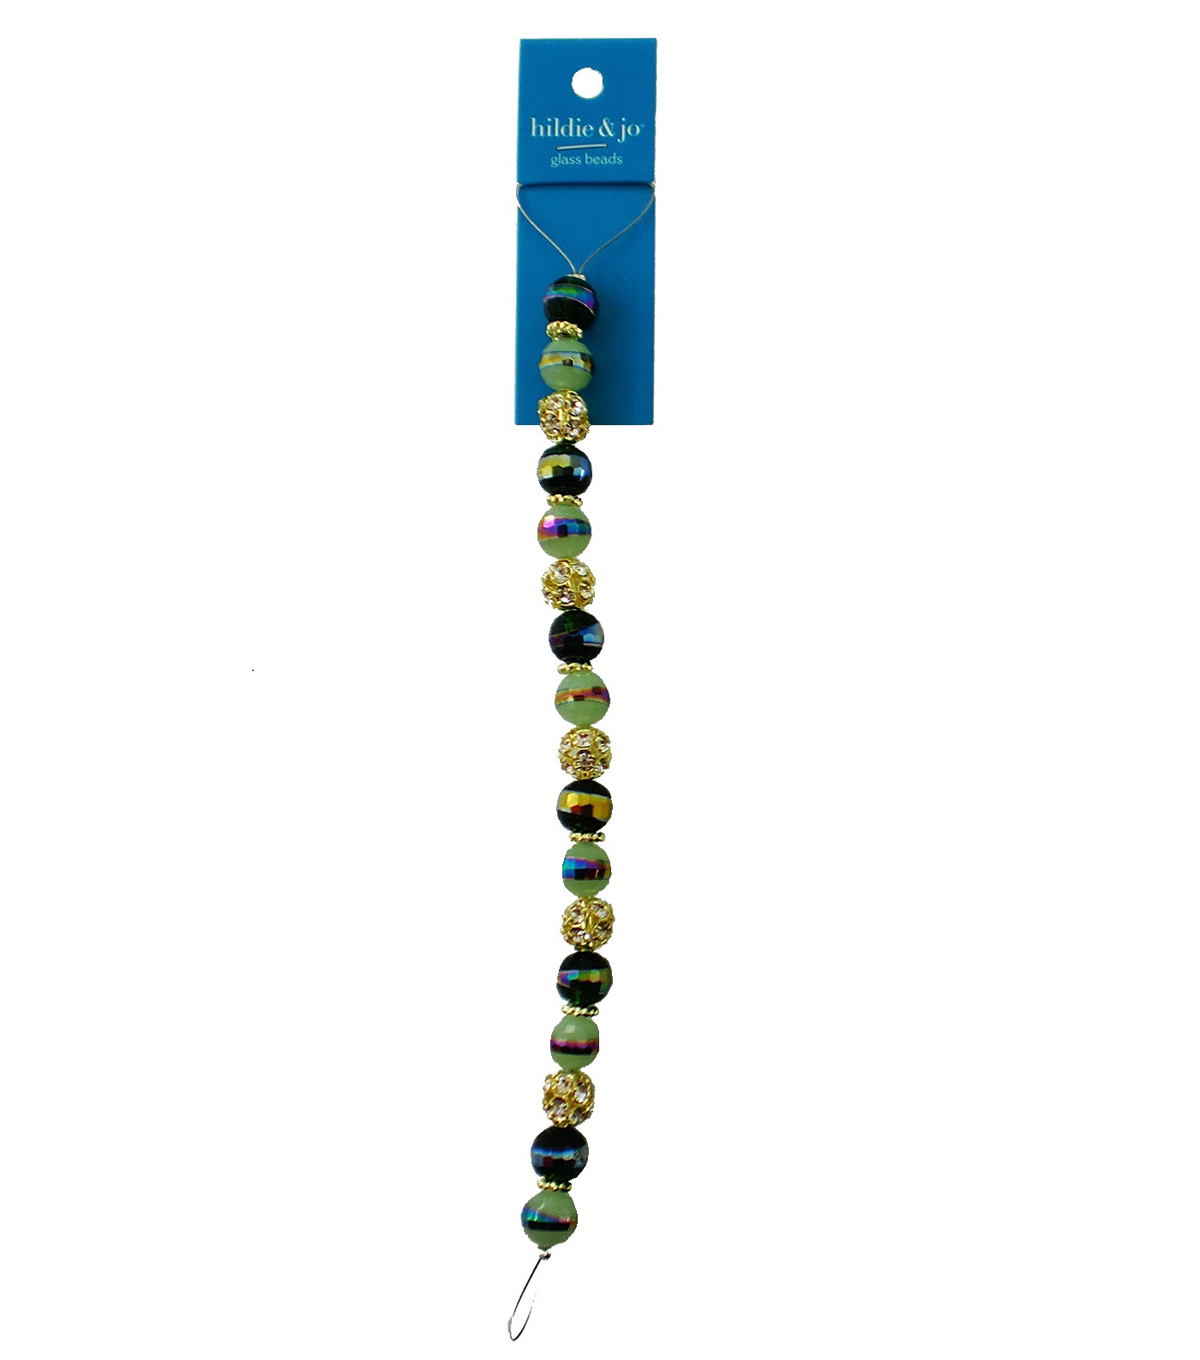 hildie & jo 7\u0027\u0027 Glass Strung Beads-Dark Green